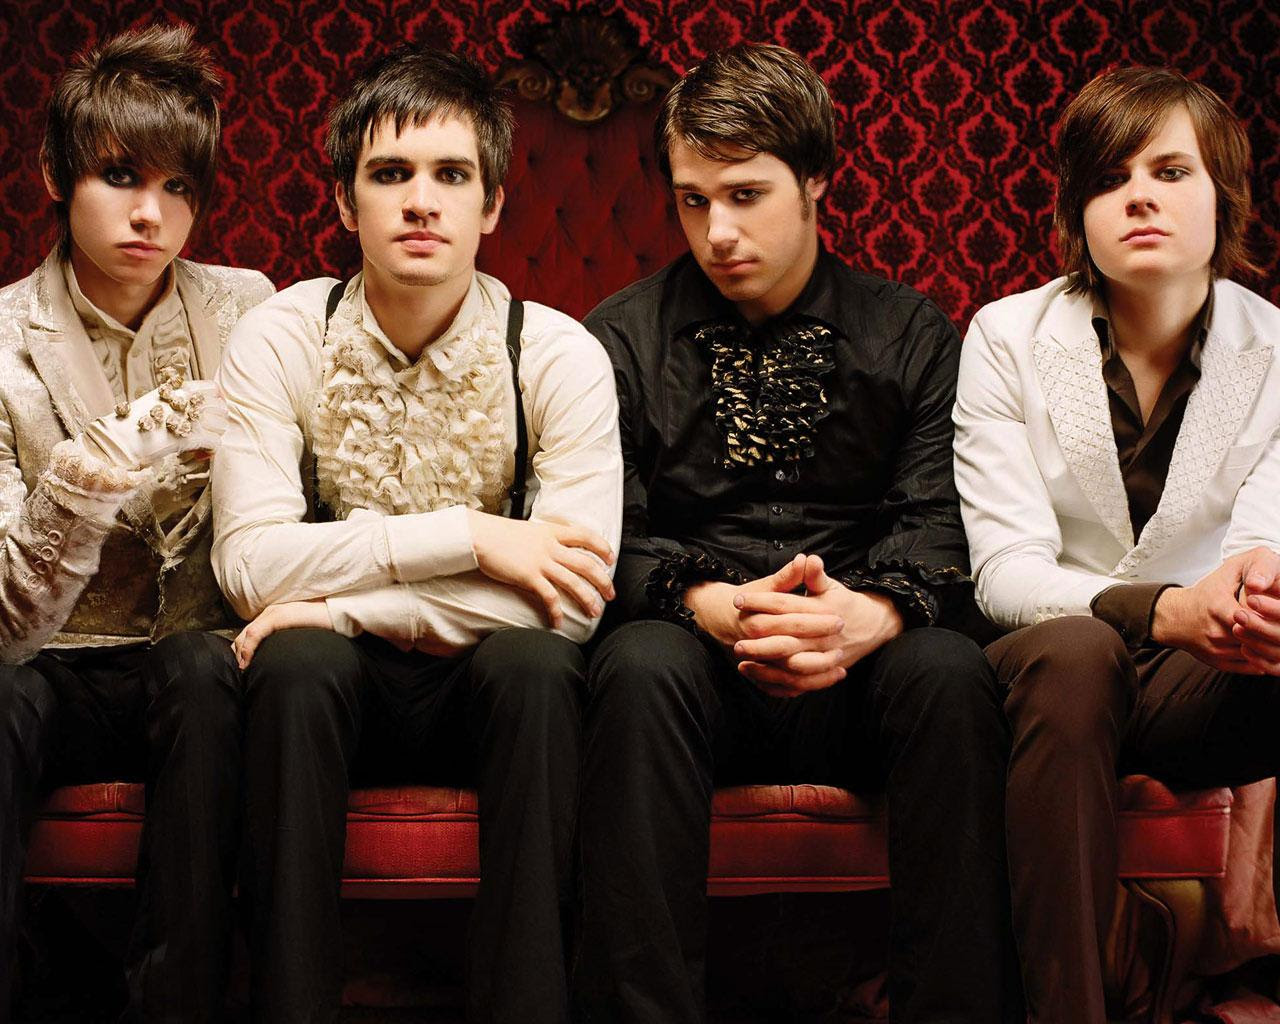 Best Band Panic At The Disco 1280x1024 Wallpaper 1